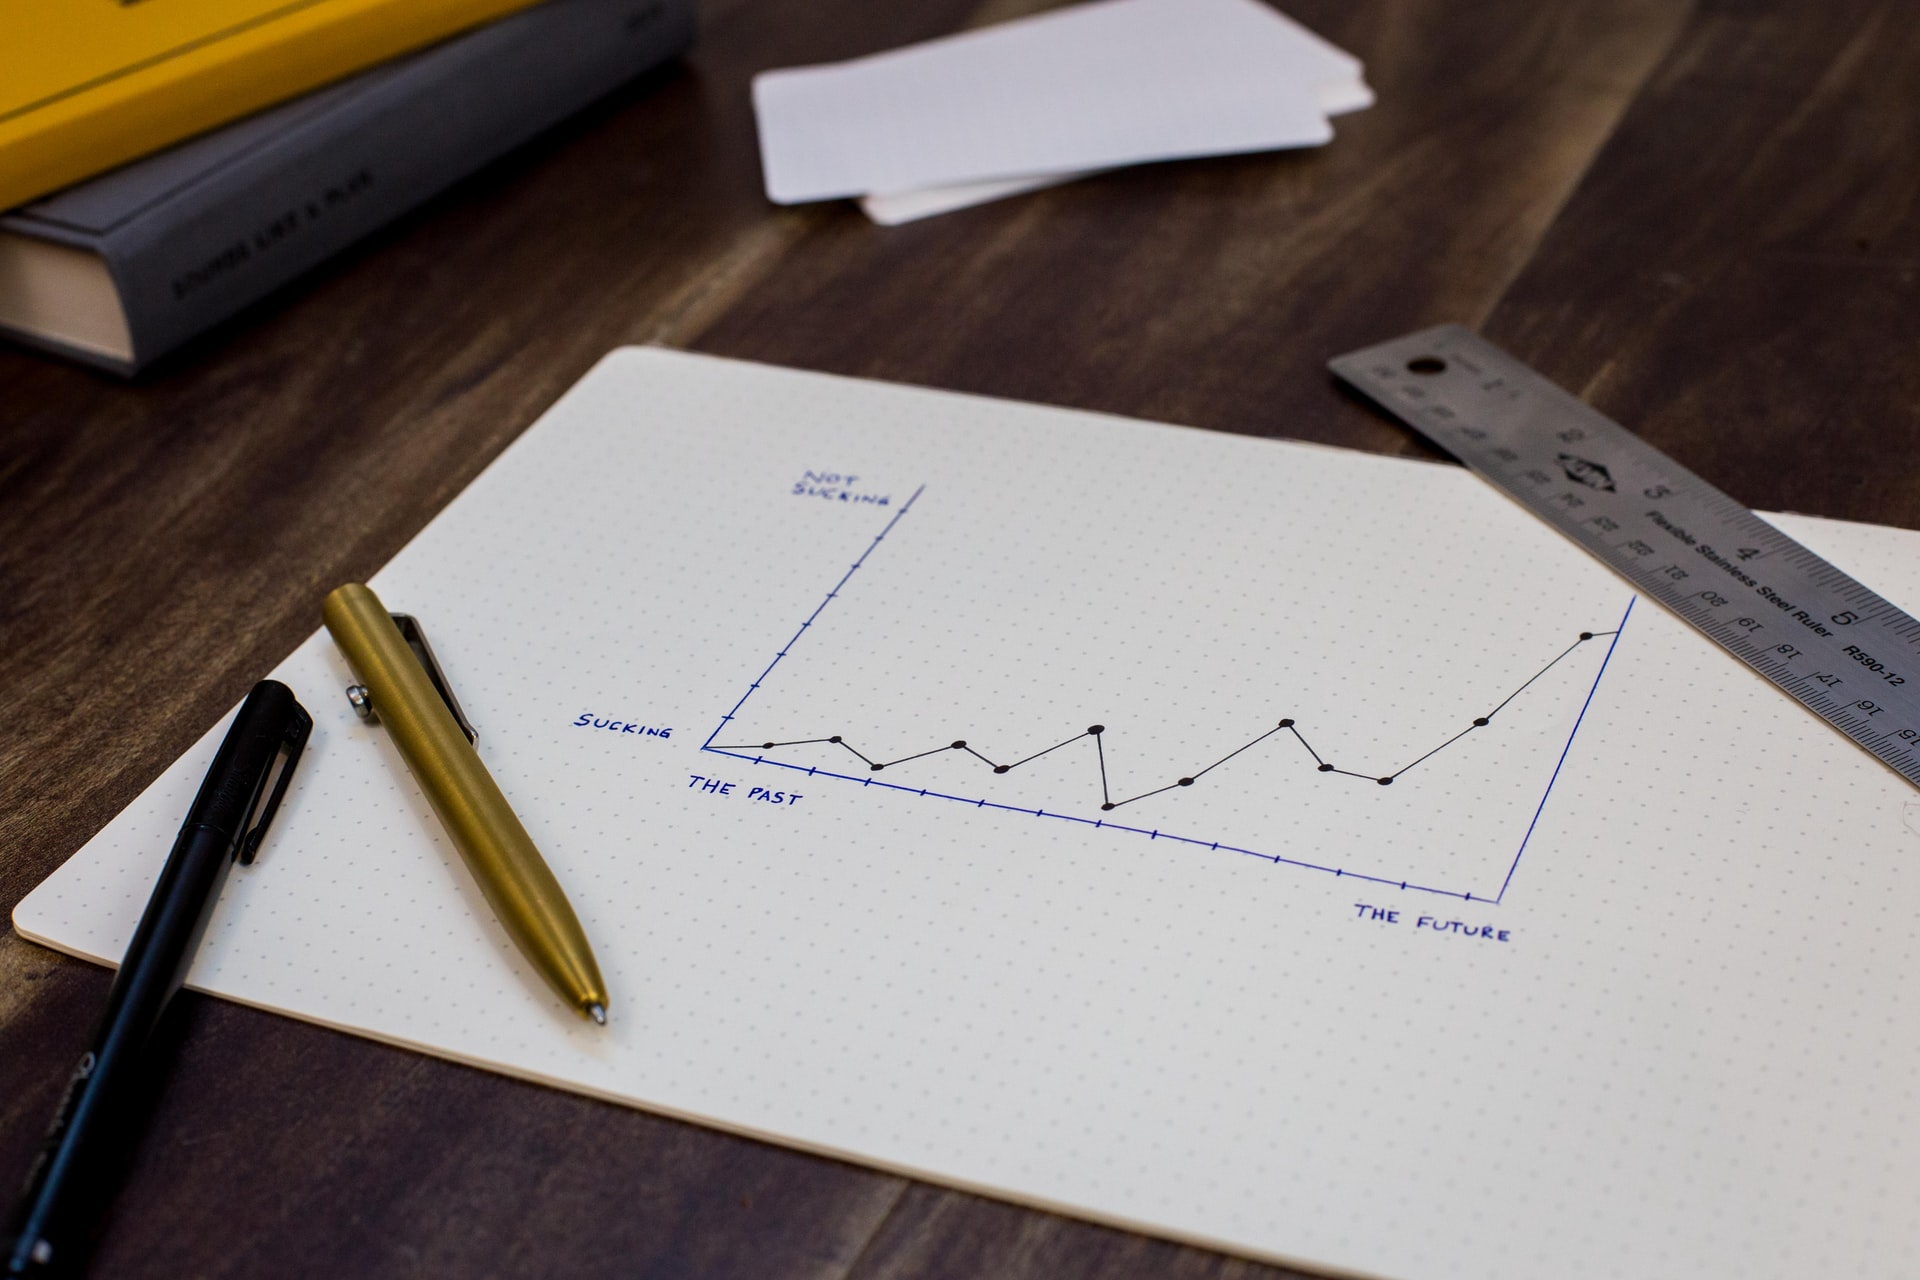 Best practices for managing your sales pipeline